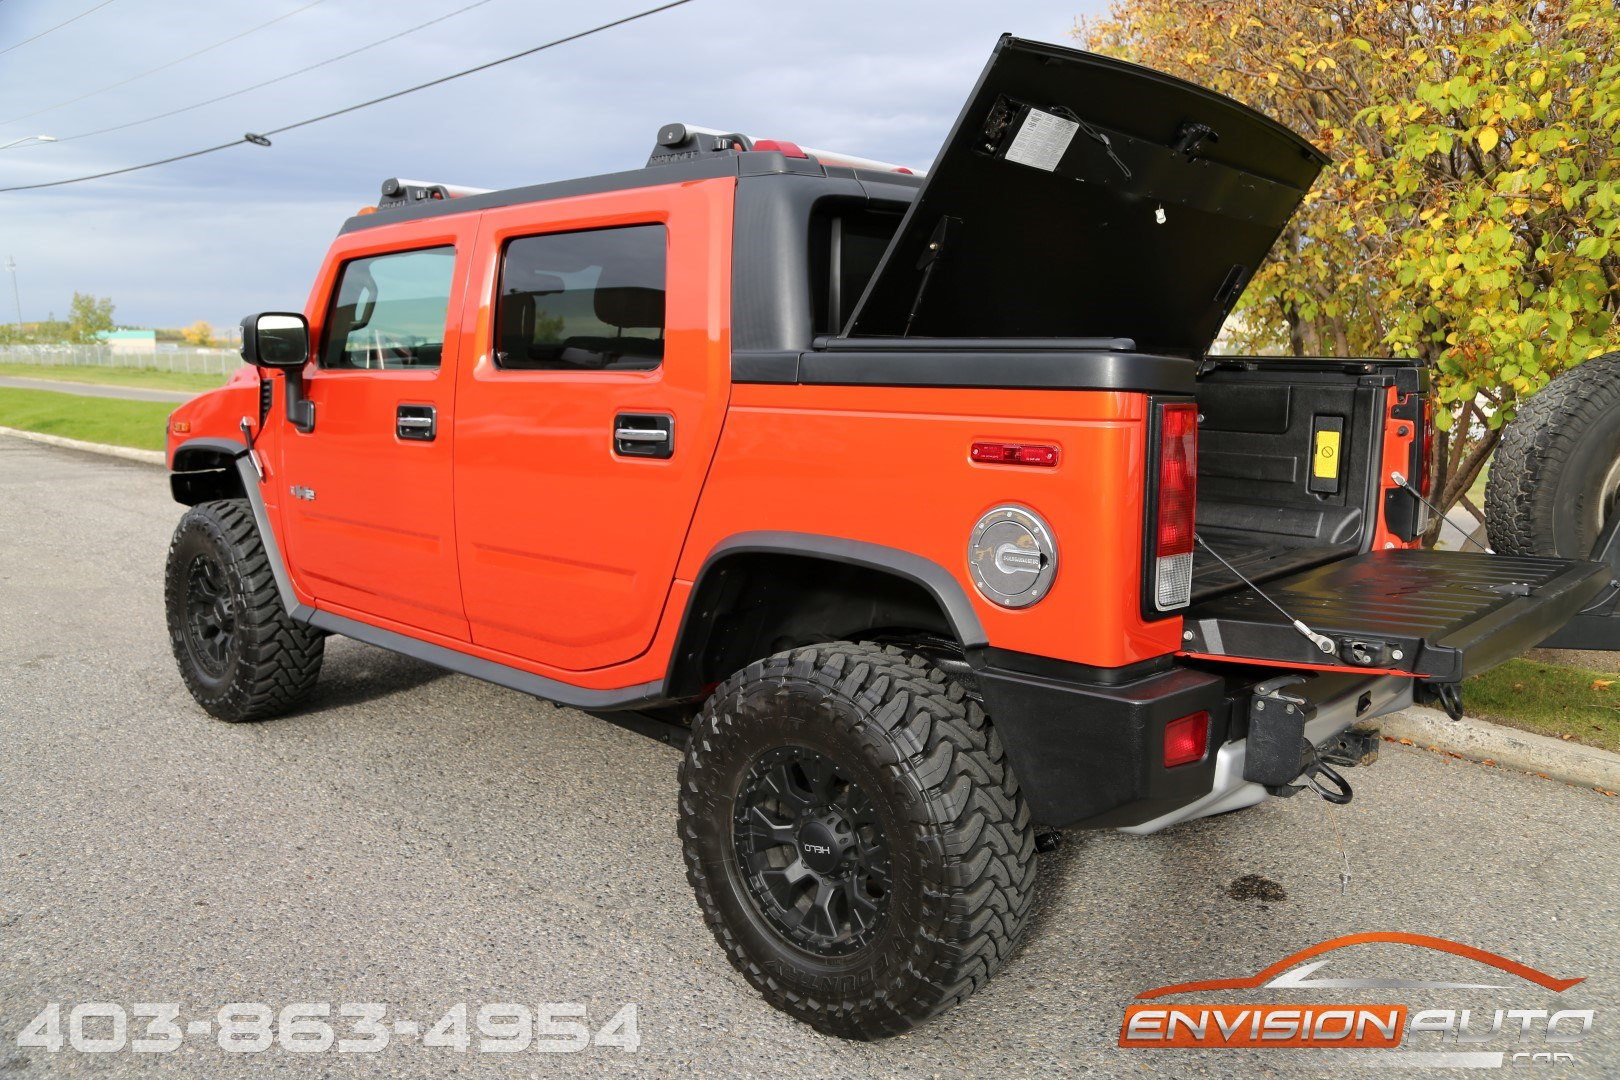 2008 h2 hummer sut luxury package envision auto. Black Bedroom Furniture Sets. Home Design Ideas